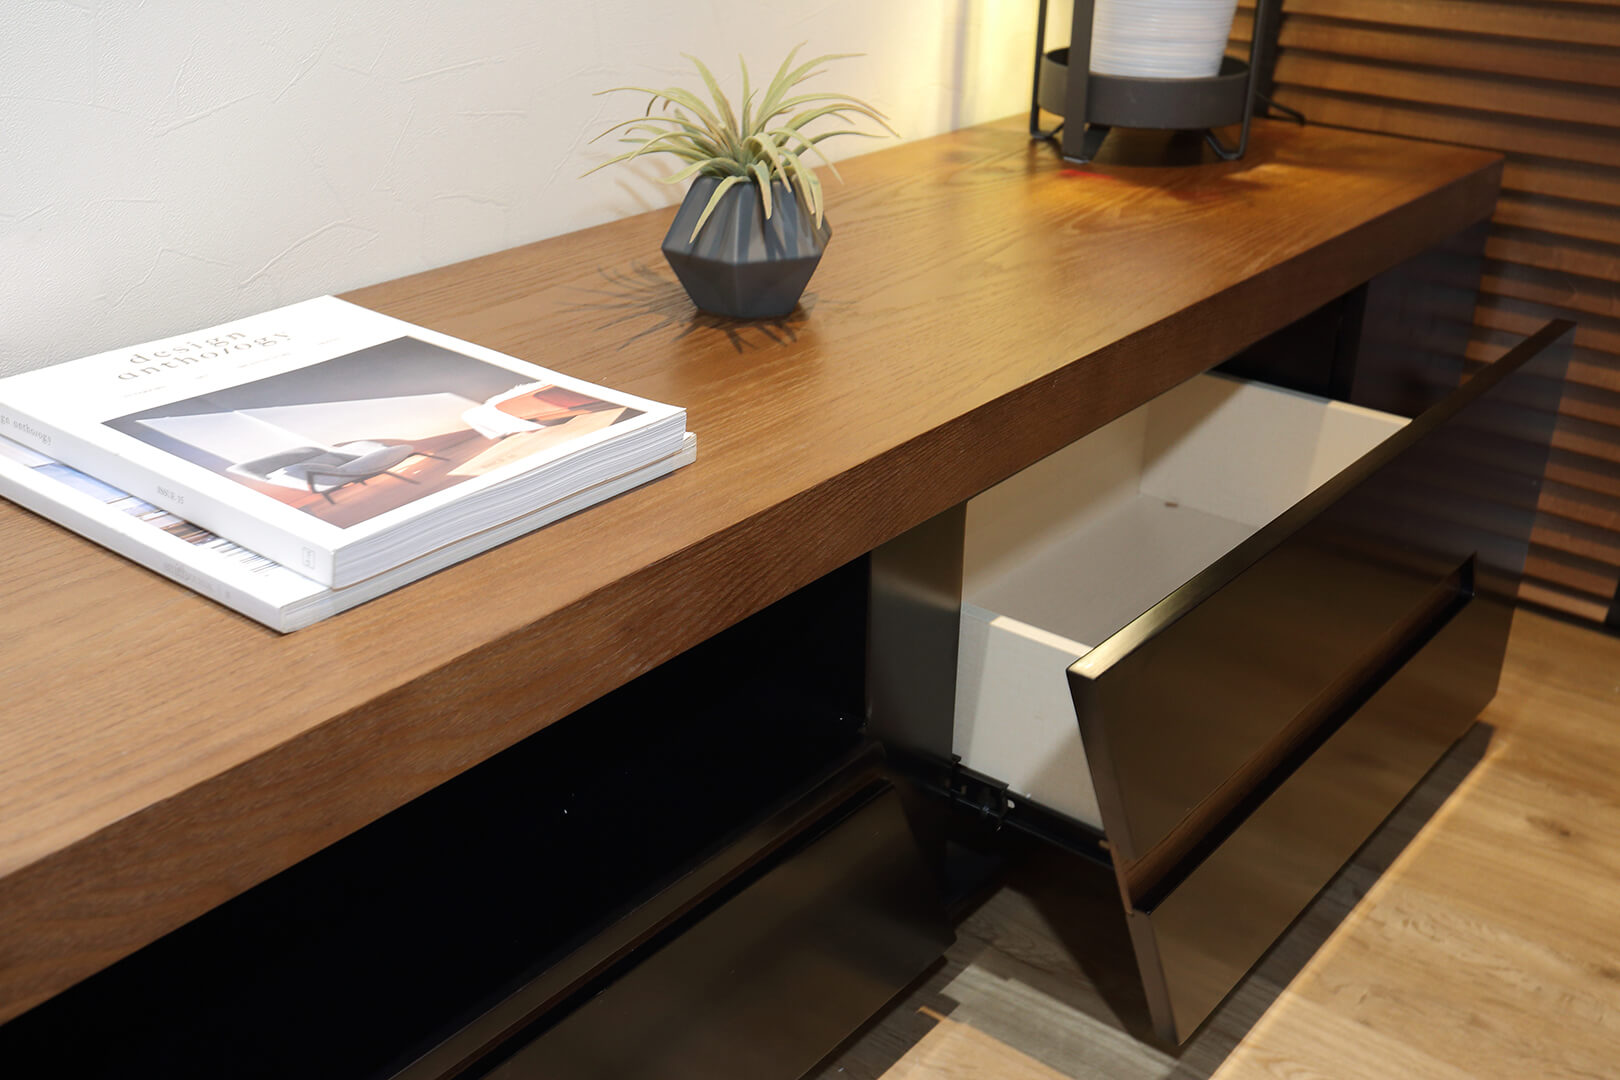 Monoloft's Design Studio Renovation Study Table and Open Drawer